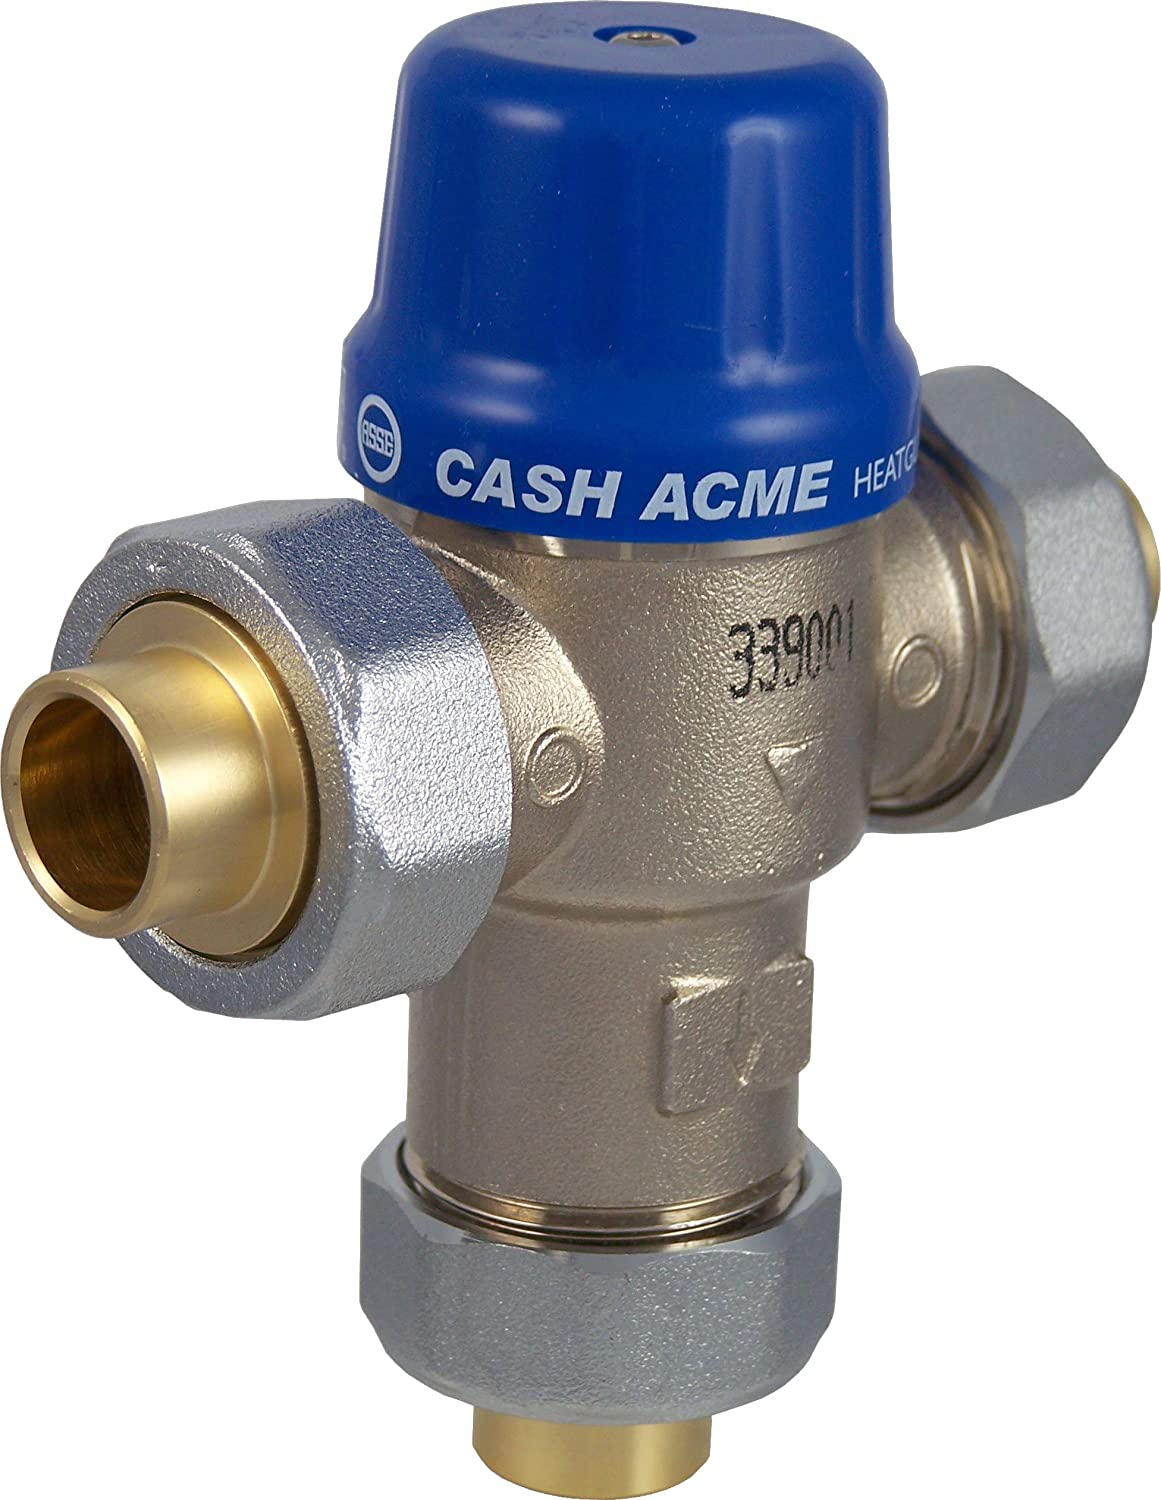 Cash Acme MIX02020LF Lead Free Heat Guard Tank Booster Pro Water ...